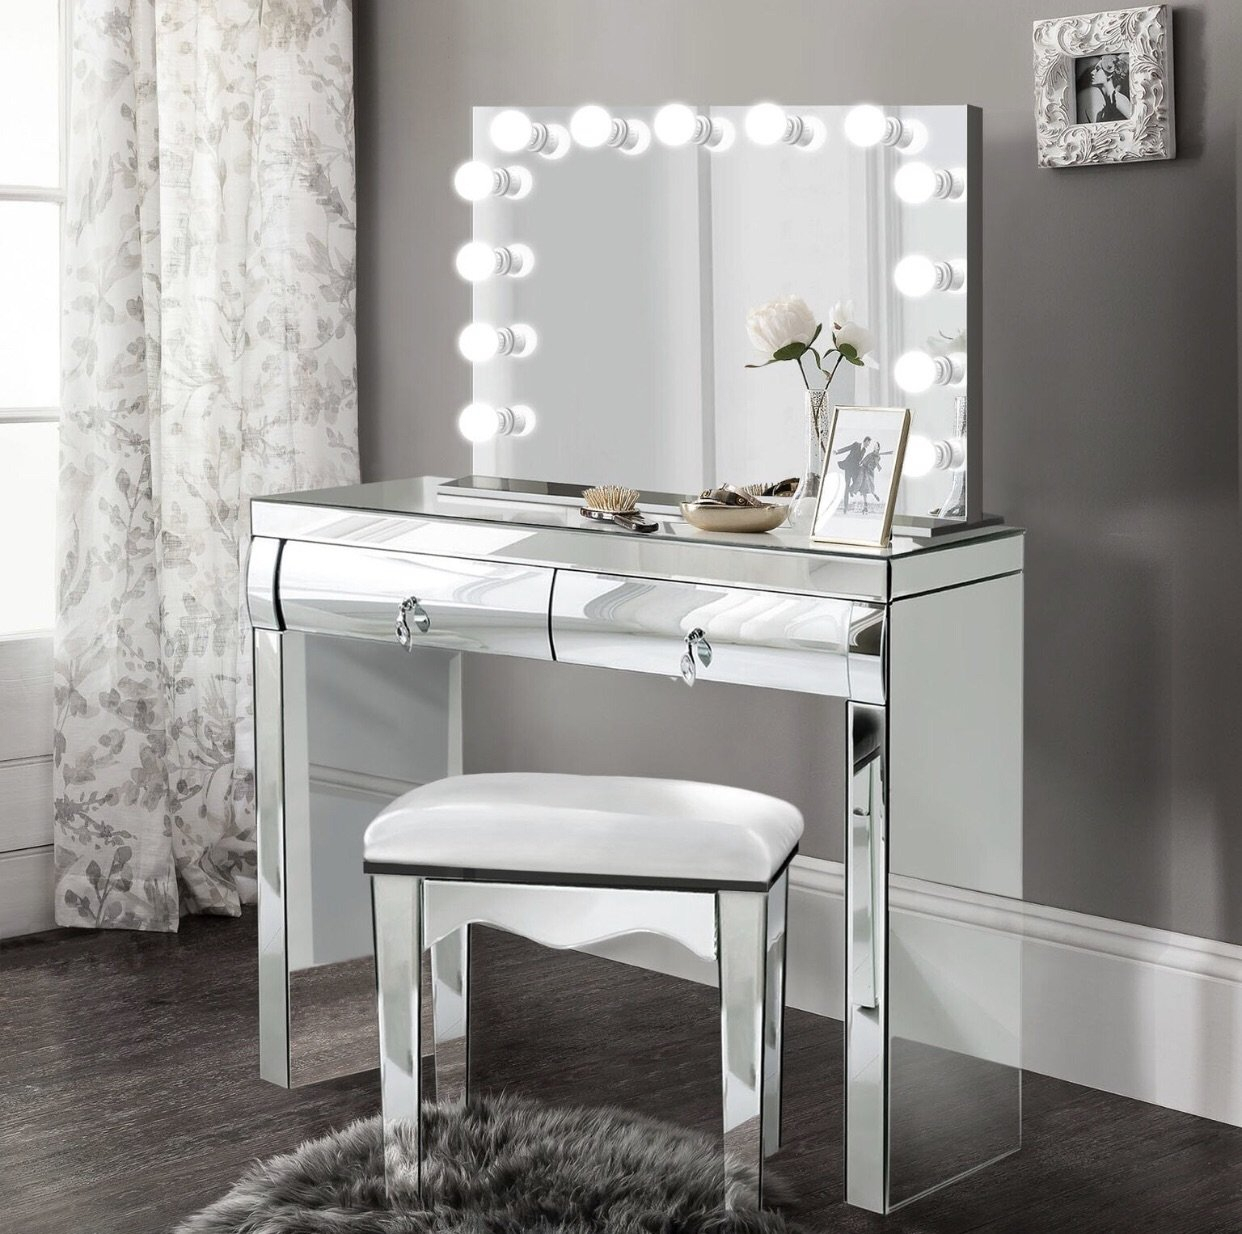 Image of Complete set - Mirrored Dimmable Hollywood Makeup Mirror LED + Built-in Outlets, chair and Vanity christmas gift, gift for girlfriend, gift